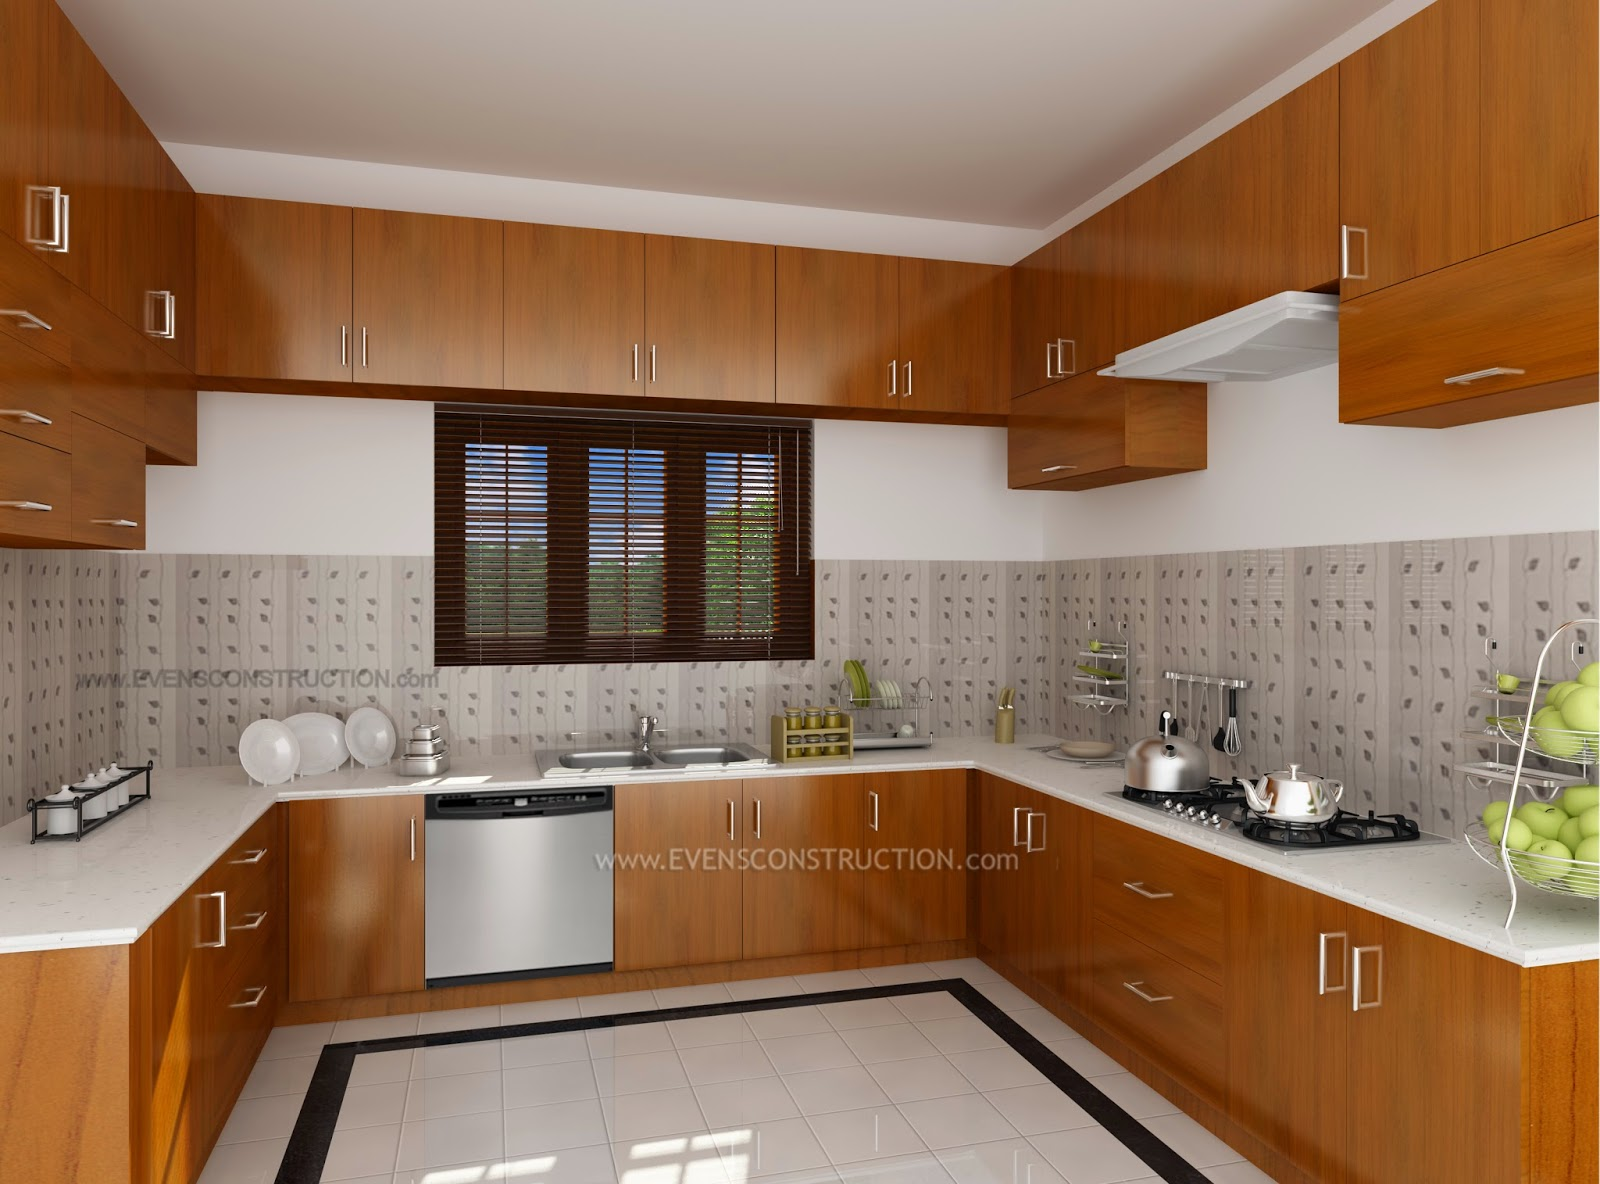 Modern kitchen interior designed for kerala home for Modern kitchen interior